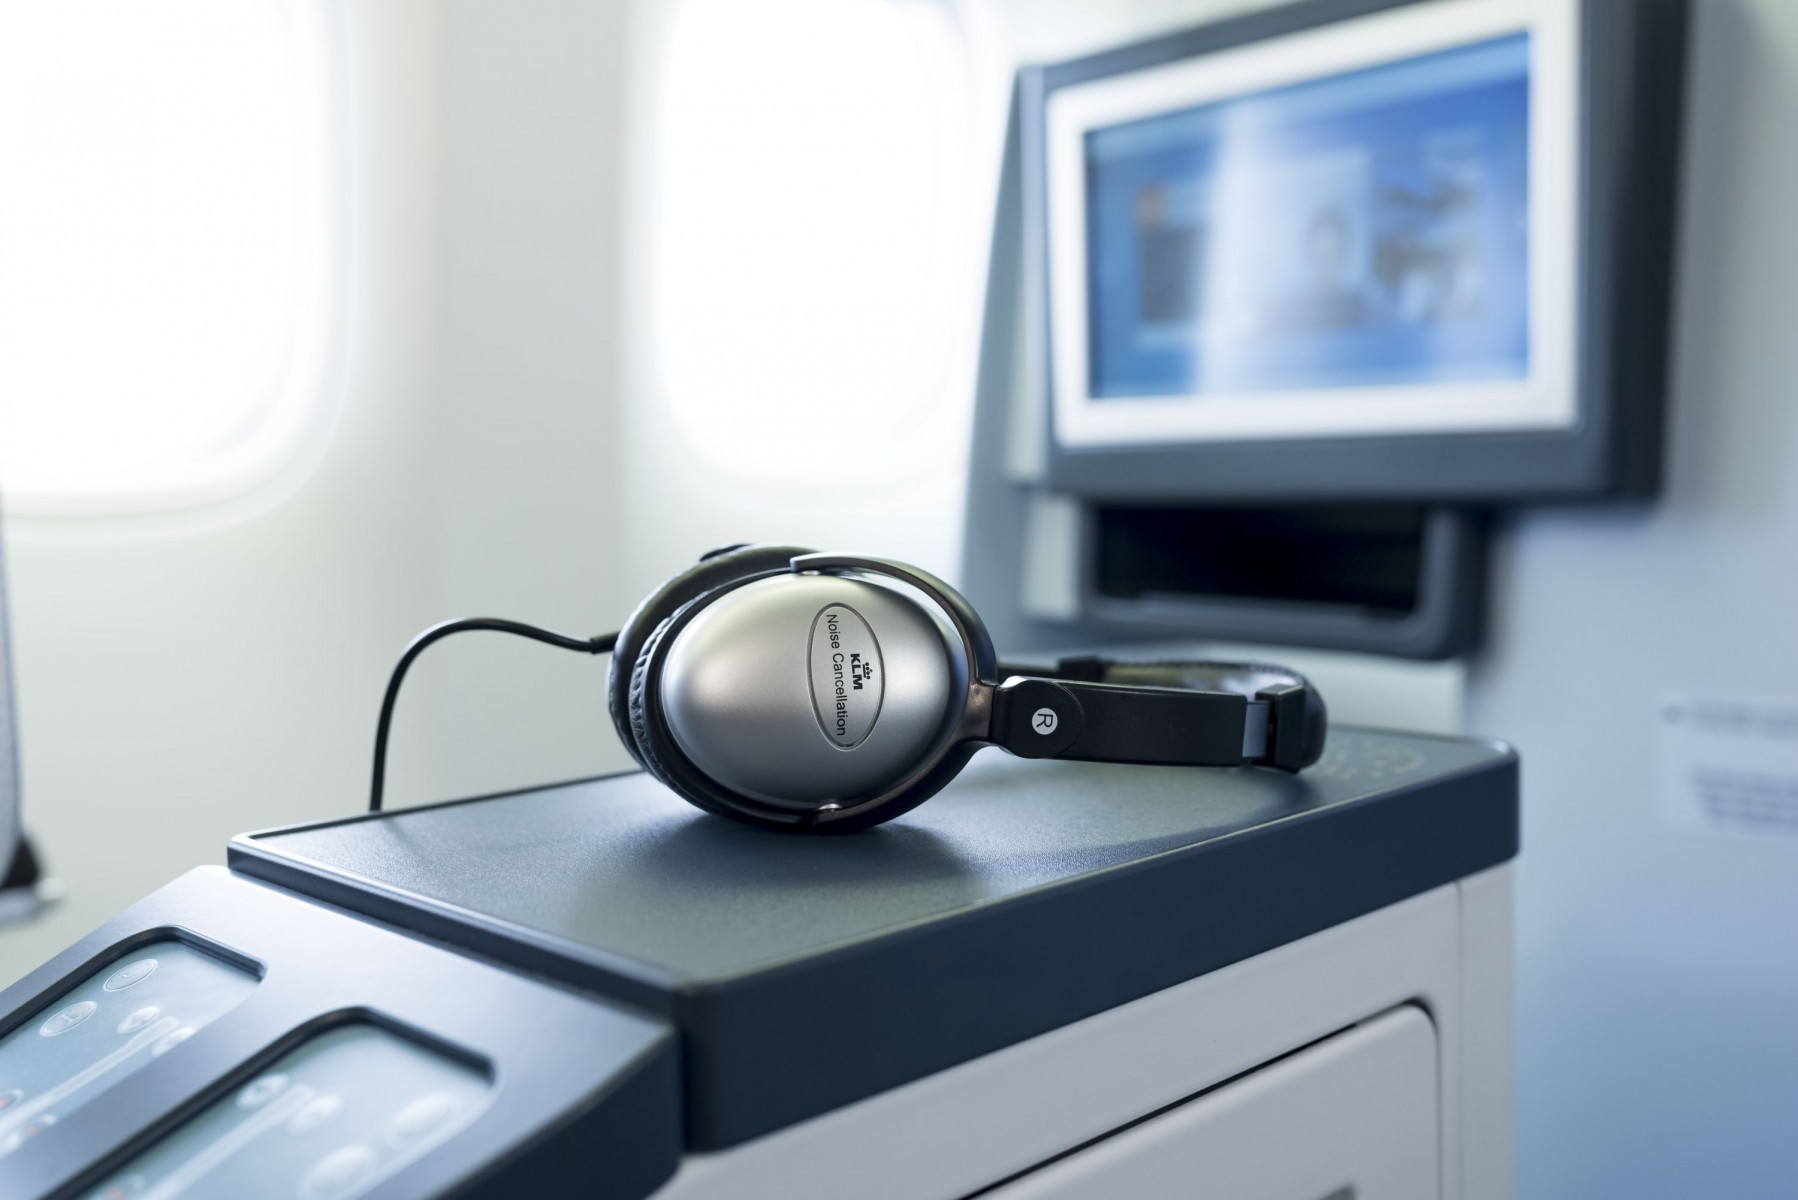 KLM introduces films with audio description for blind and visually impaired passengers